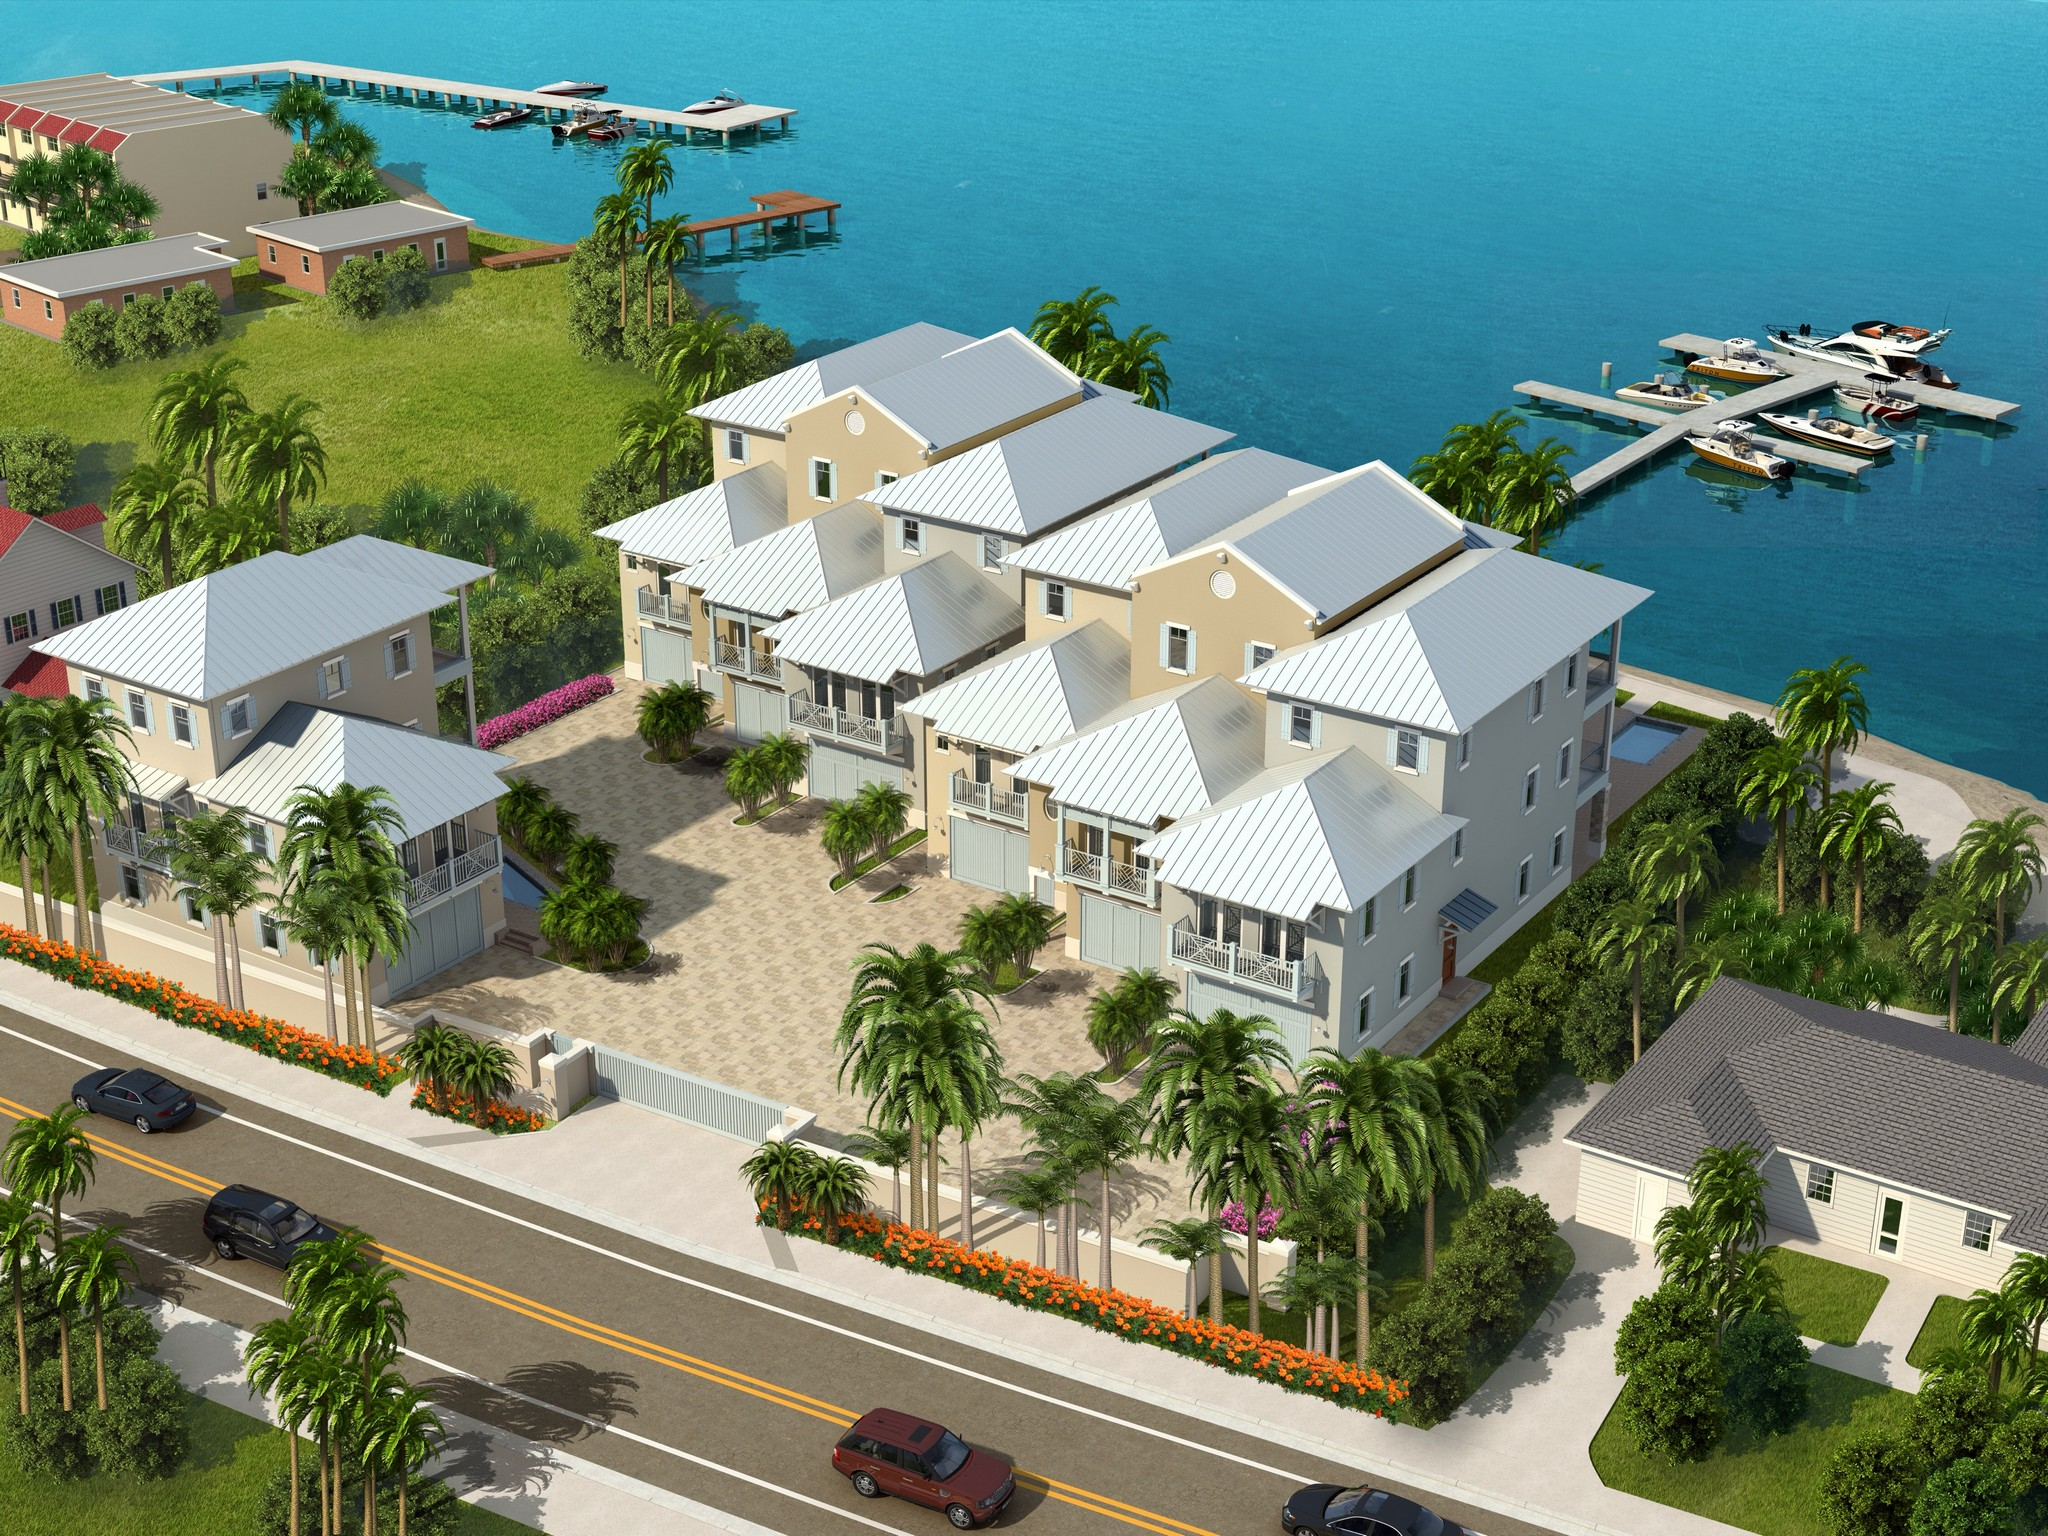 Moradia em banda para Venda às Riverfront Ultra-luxury townhome 1502 Seaway Drive #5 Fort Pierce, Florida 34949 Estados Unidos